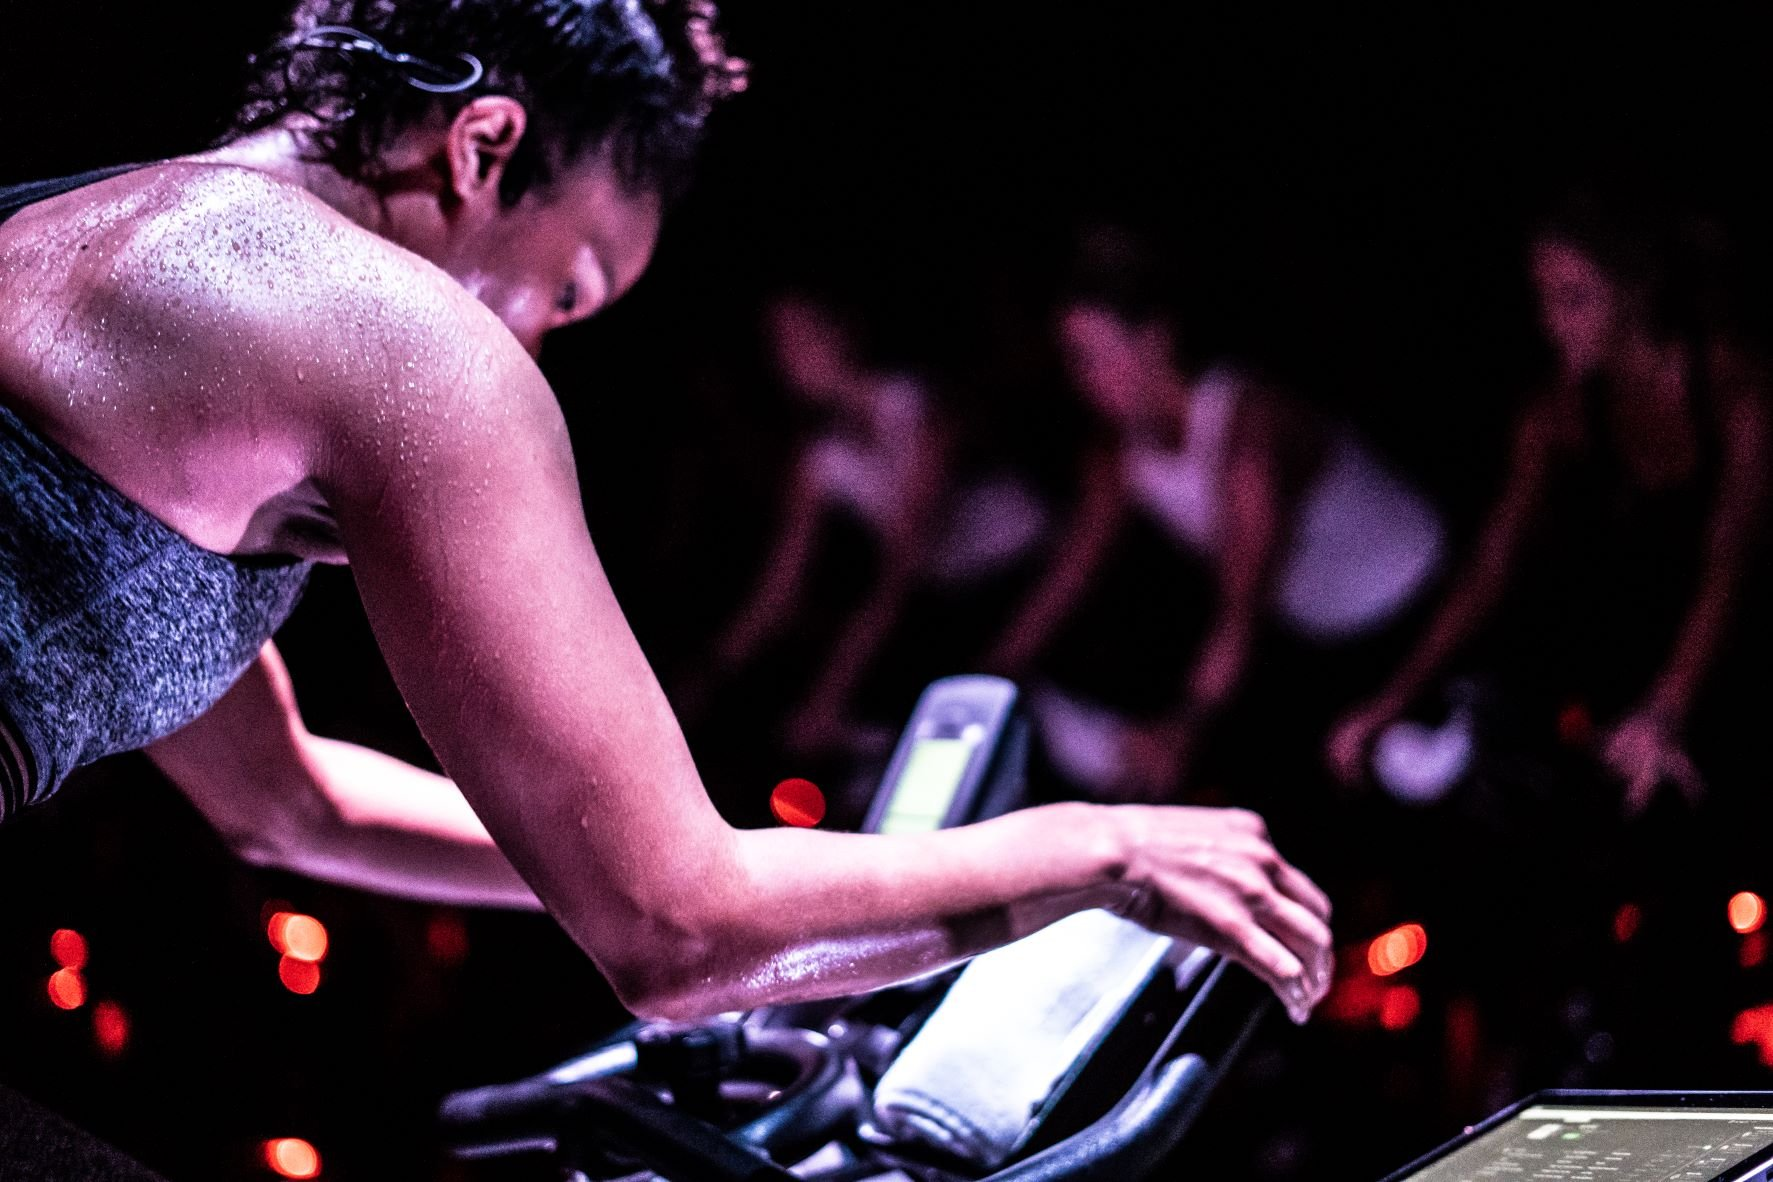 """<p><span>""""CYCLING INSTRUCTORS MUST BE DYNAMIC AND BE ABLE TO DELIVER NOT ONLY A GREAT WORKOUT BUT AN EXPERIENCE FOR THE RIDER,"""" SAys TEVIA CELLI, THE VICE PRESIDENT OF EXPERIENCE AT CYCLEBAR.</span></p>"""